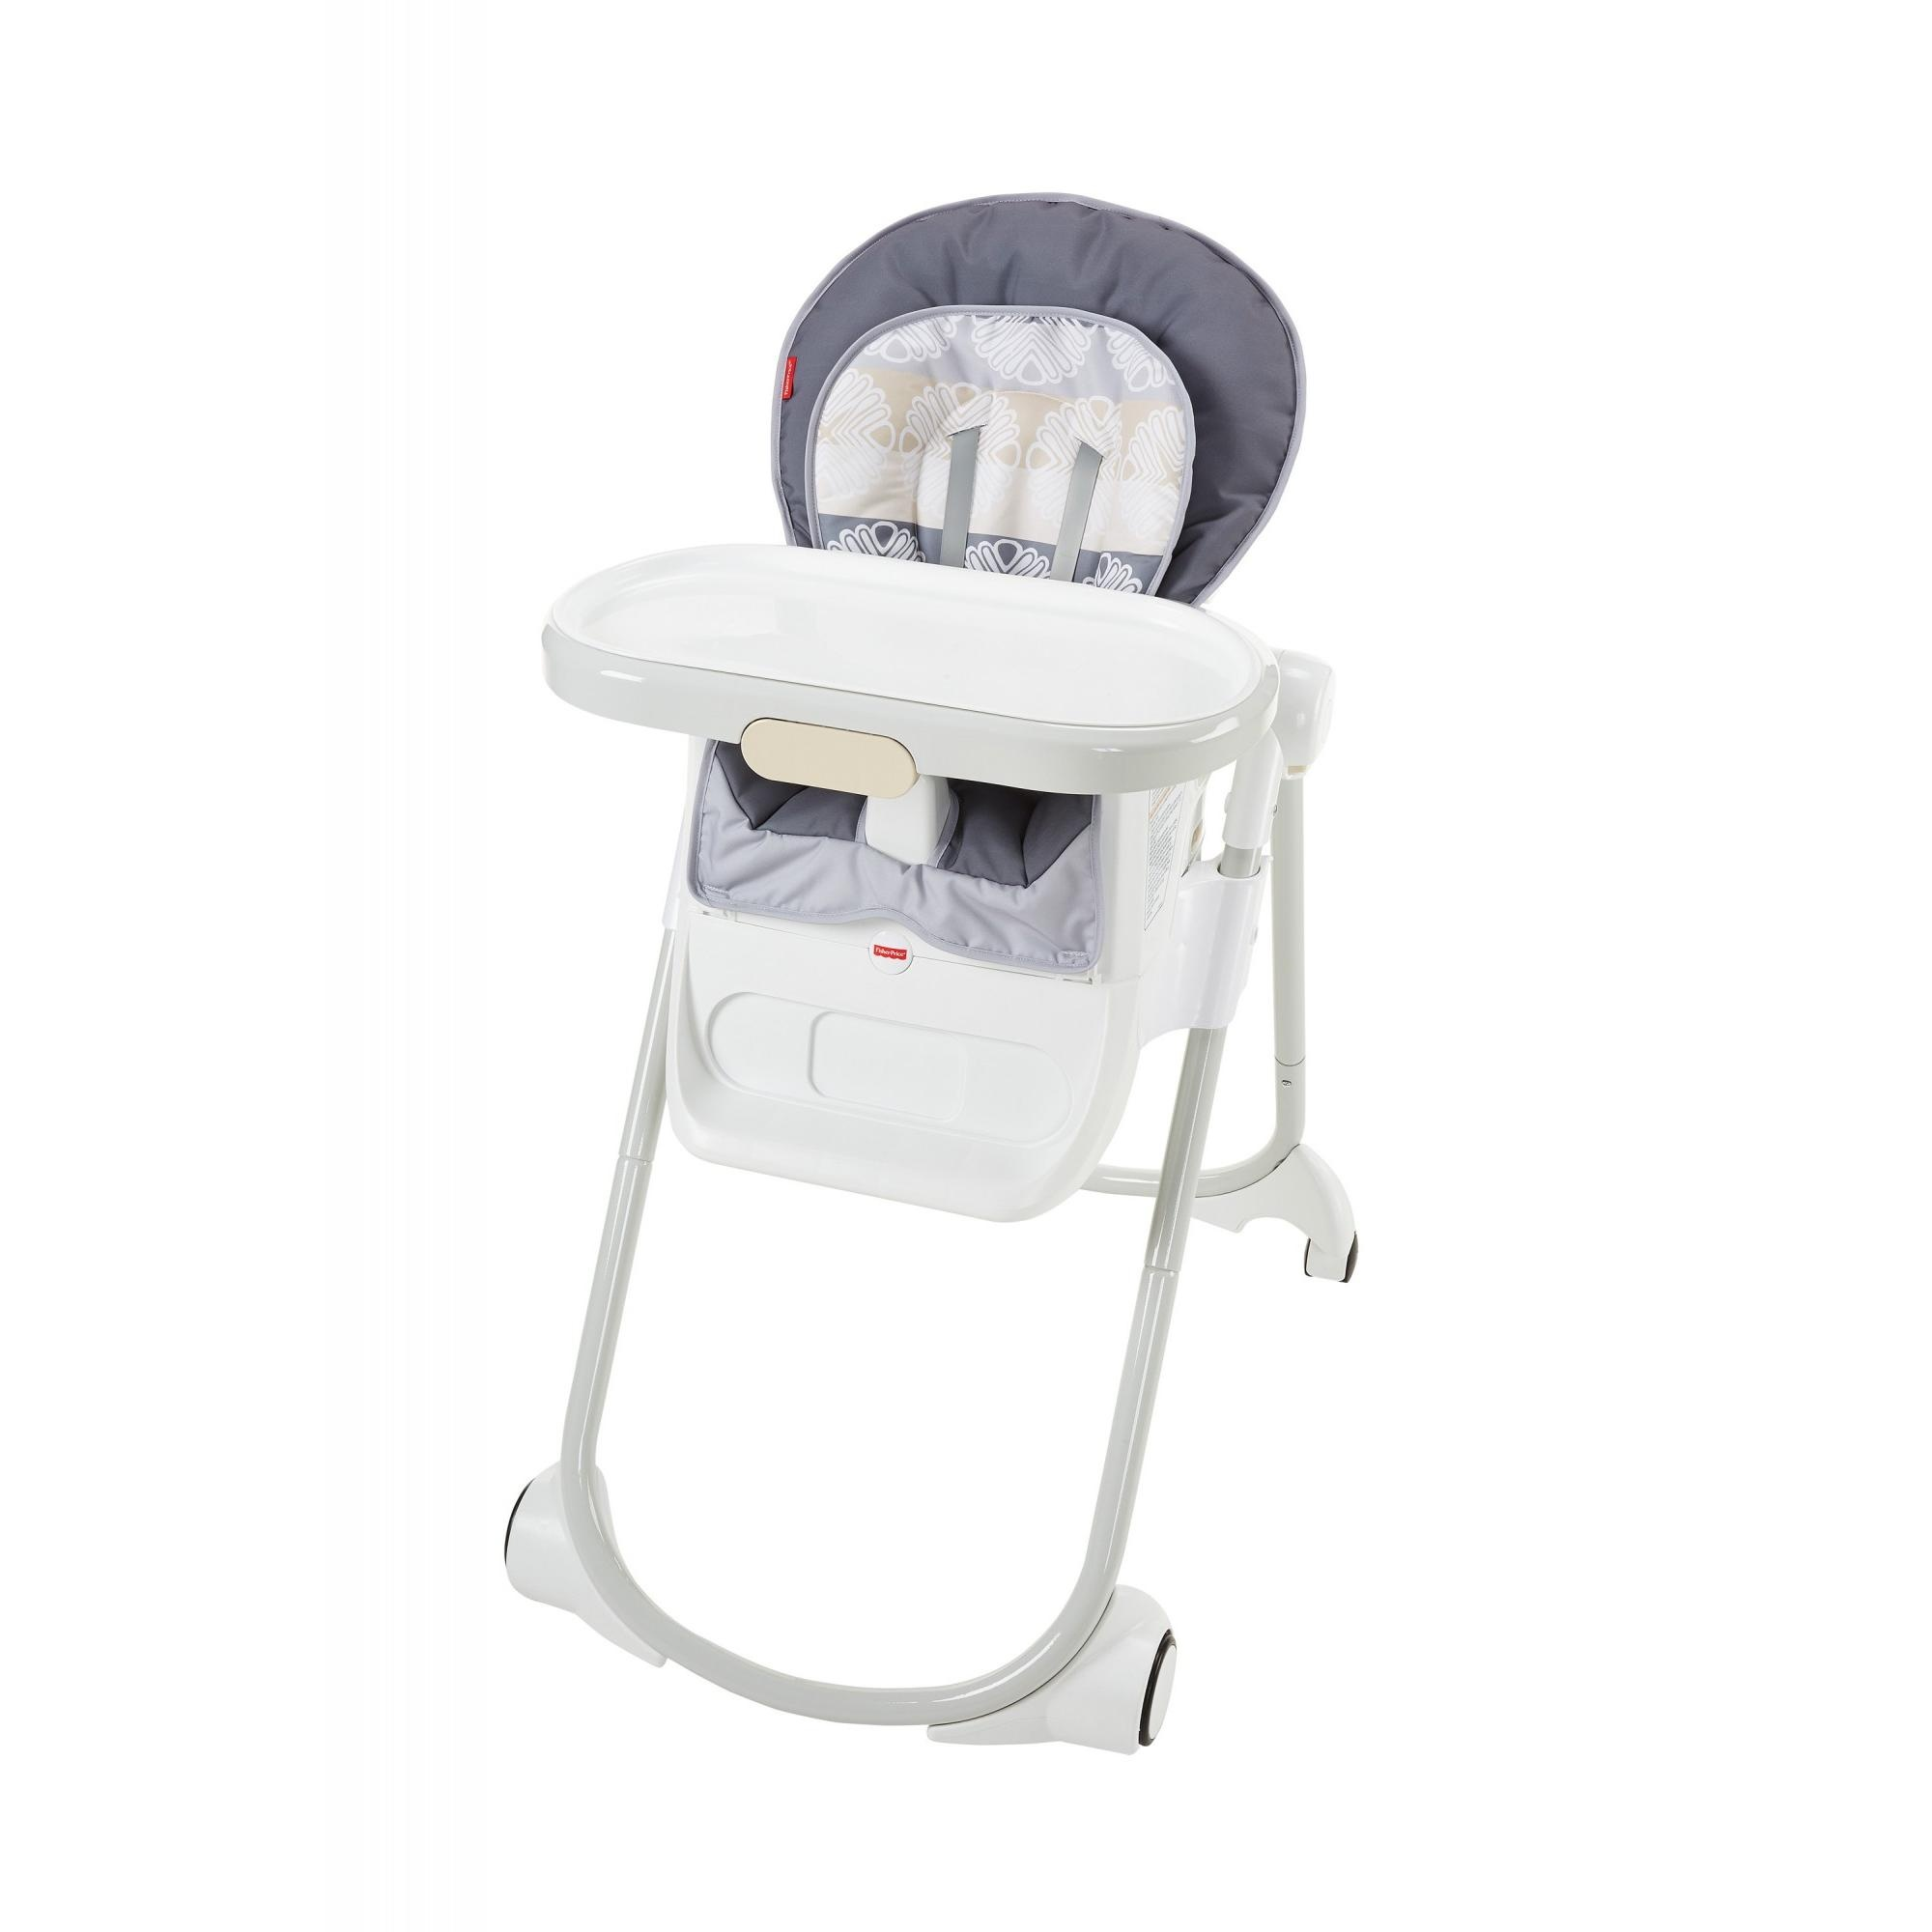 Fisher Price 4 in 1 Total Clean High Chair White Grey e size